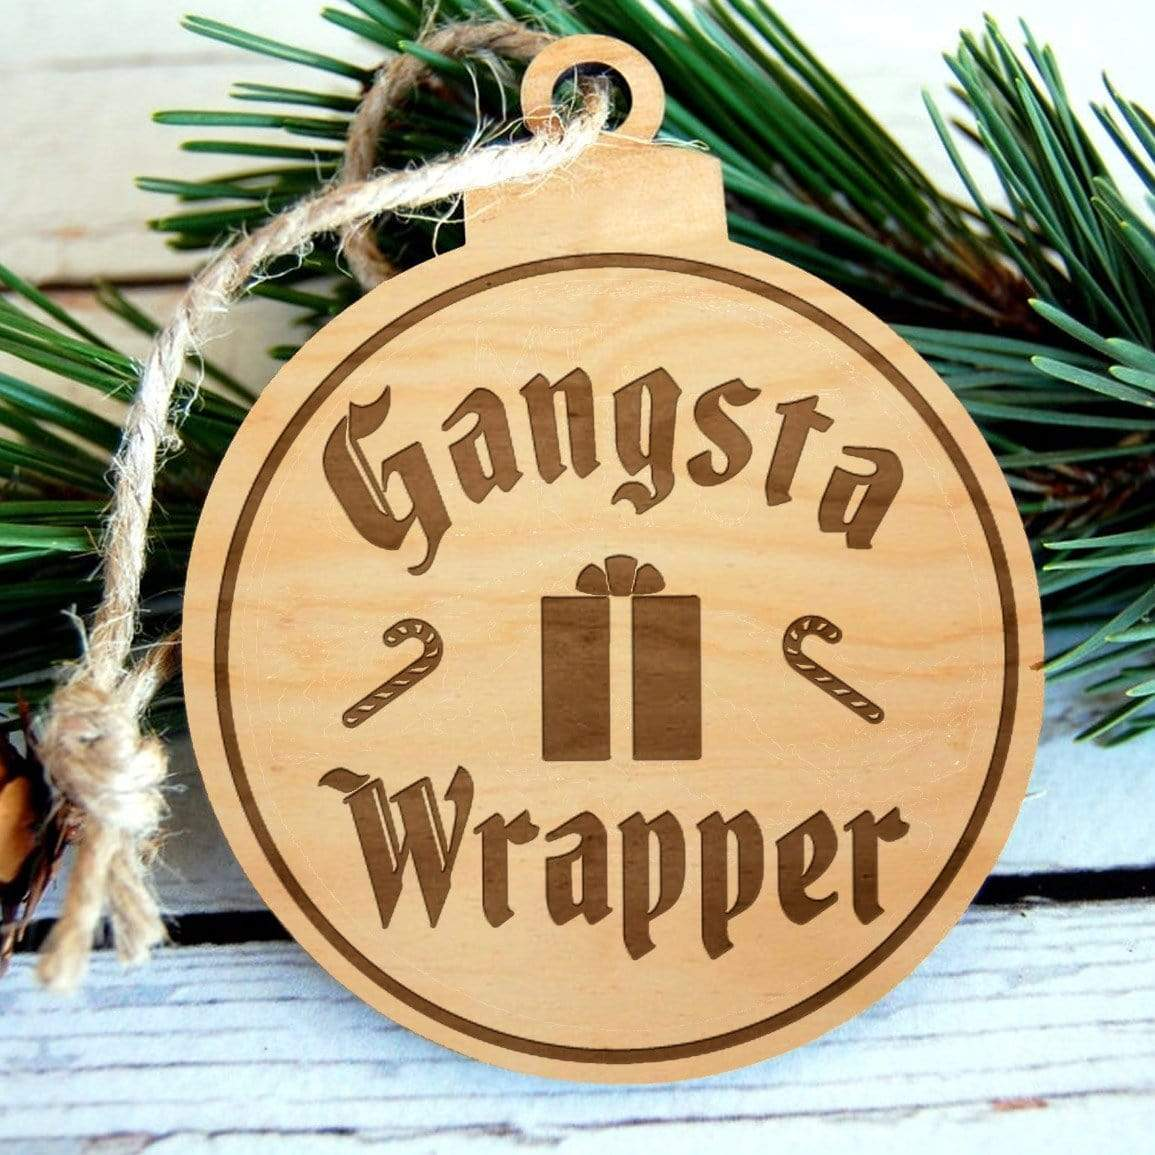 Gangsta Wrapper Laser Engraved Wooden Christmas Ornament